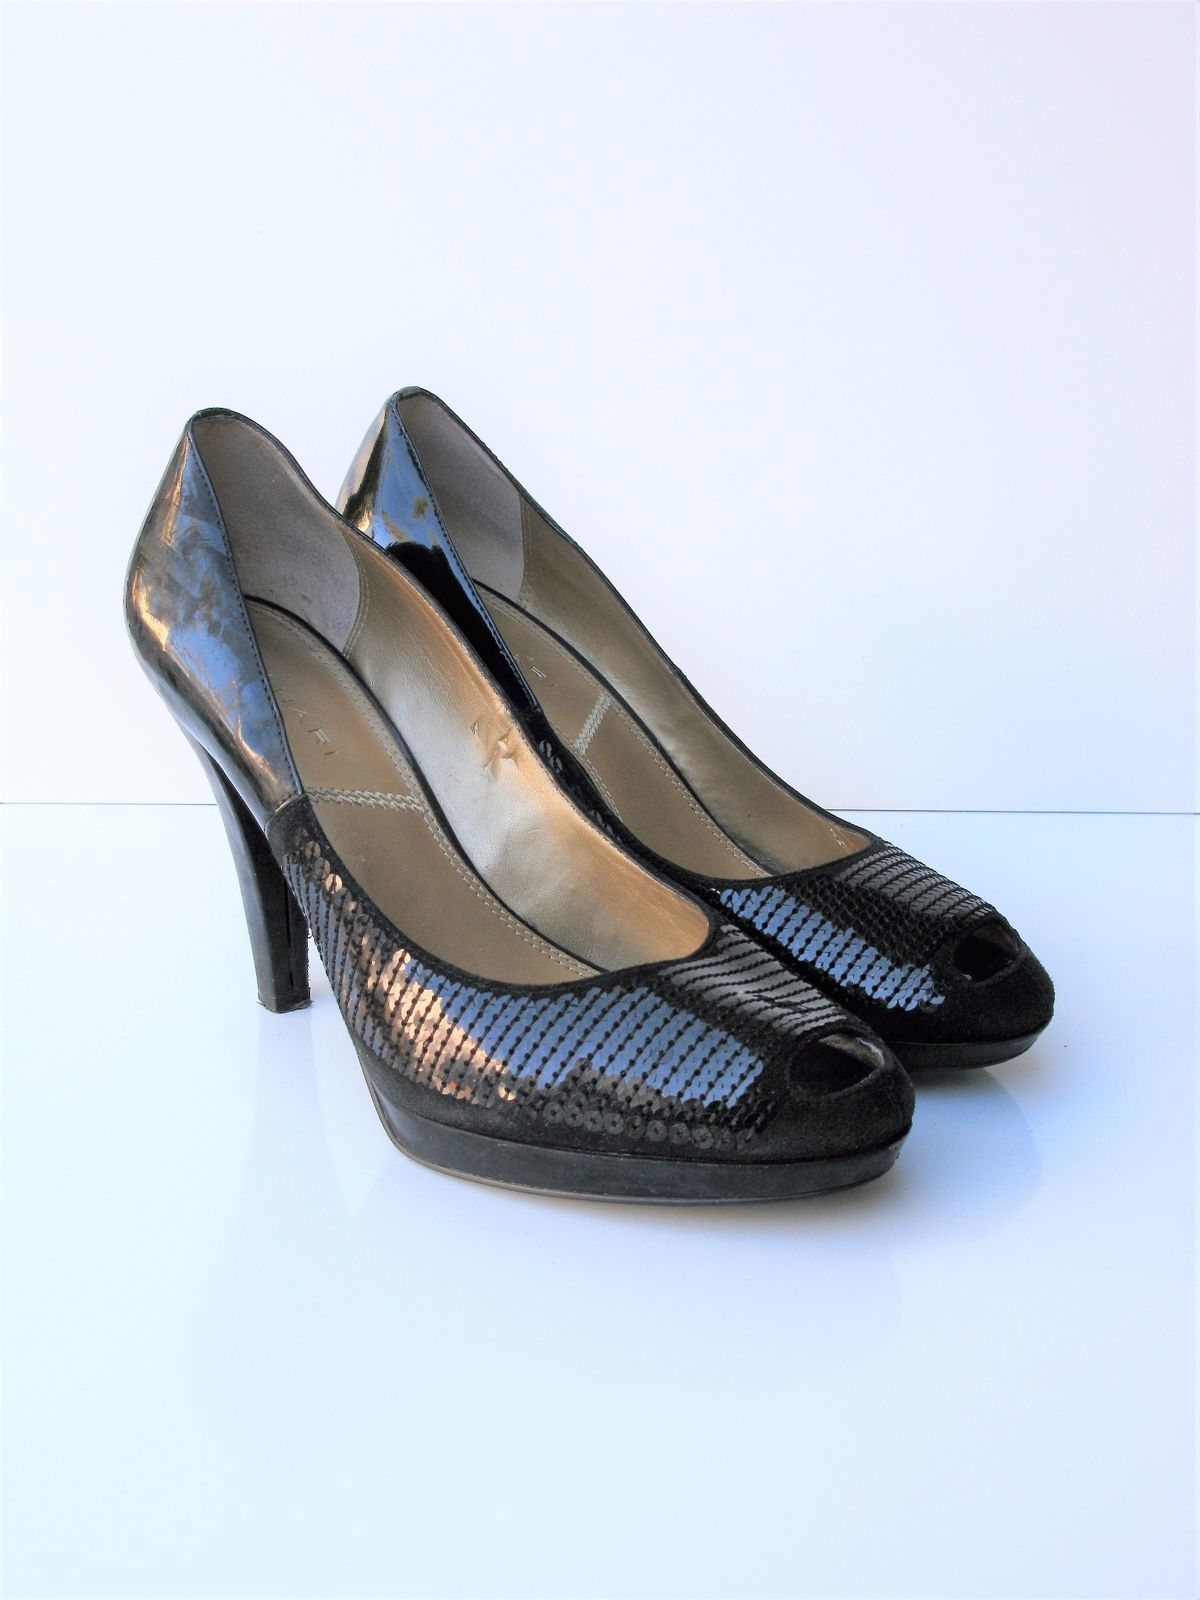 Pumps Heels Retro Tahari Hanna Sequined Open Toe 40s Style Pump 10 $225 MSRP